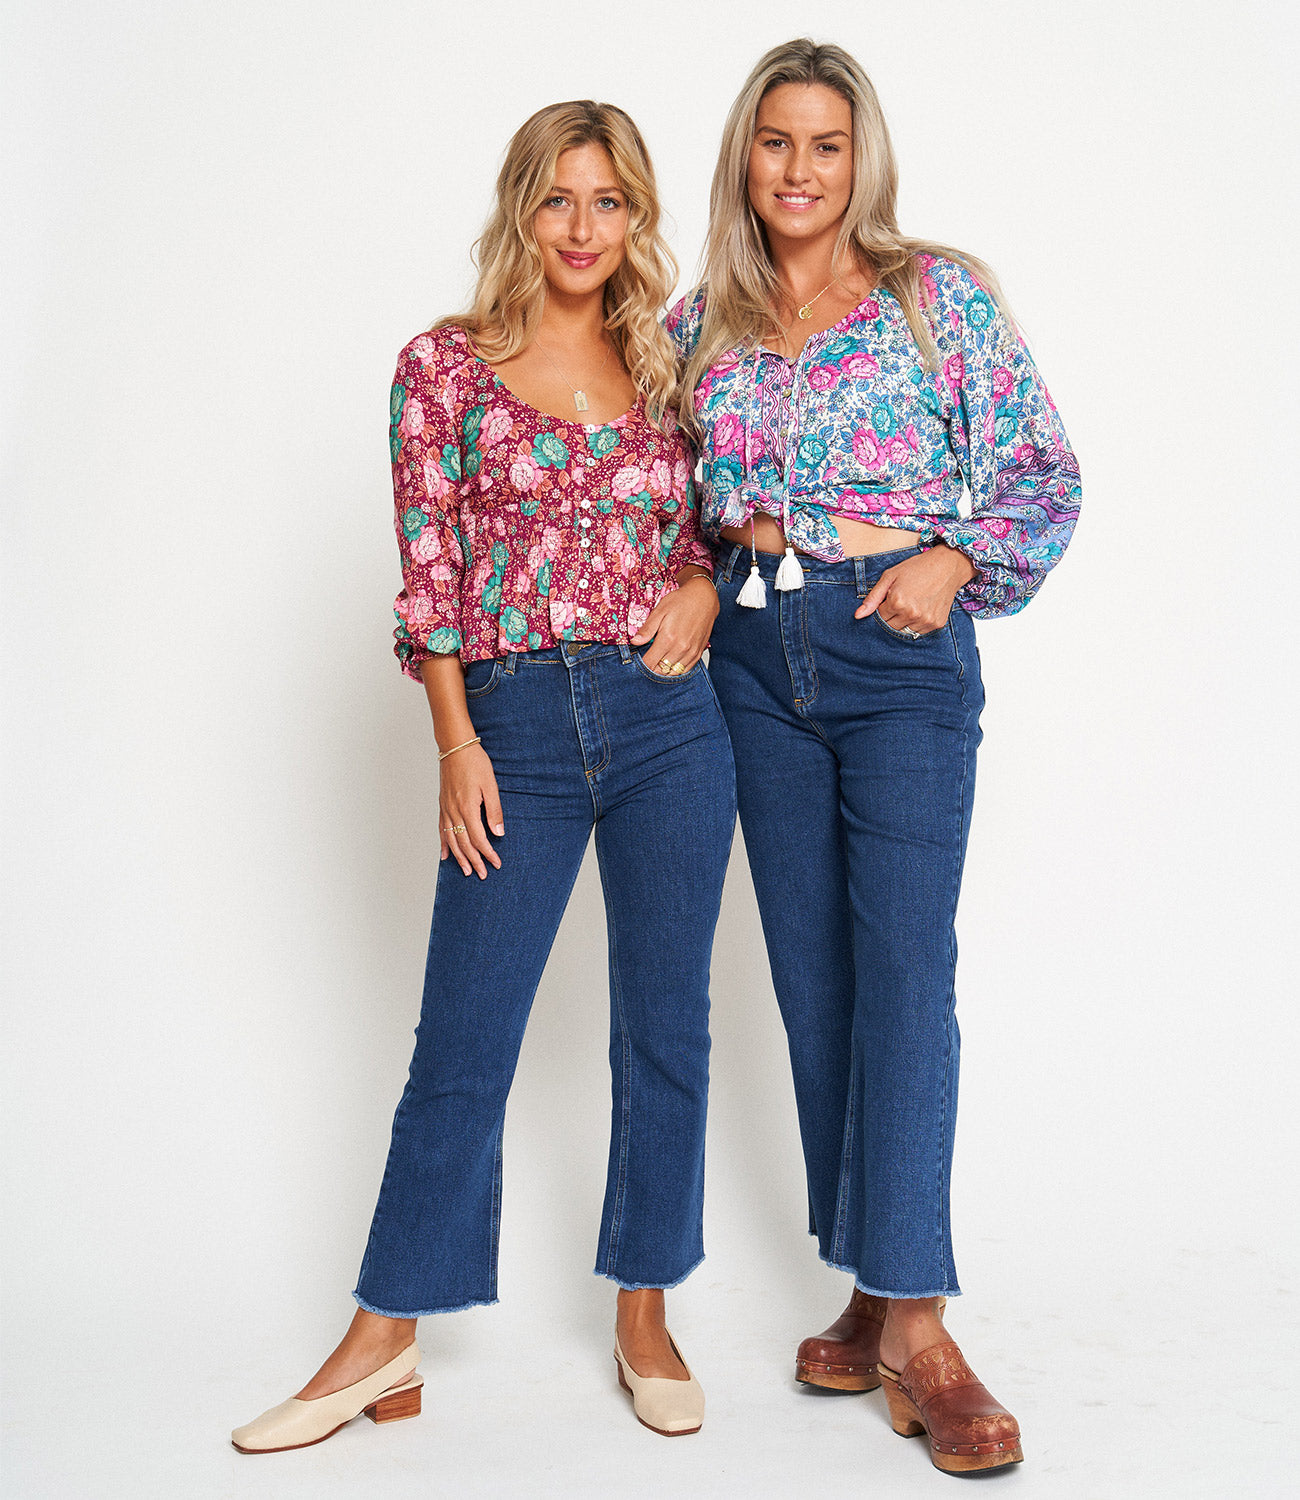 Arnhem Hideaway Cropped Jeans perfect for every body shape and size